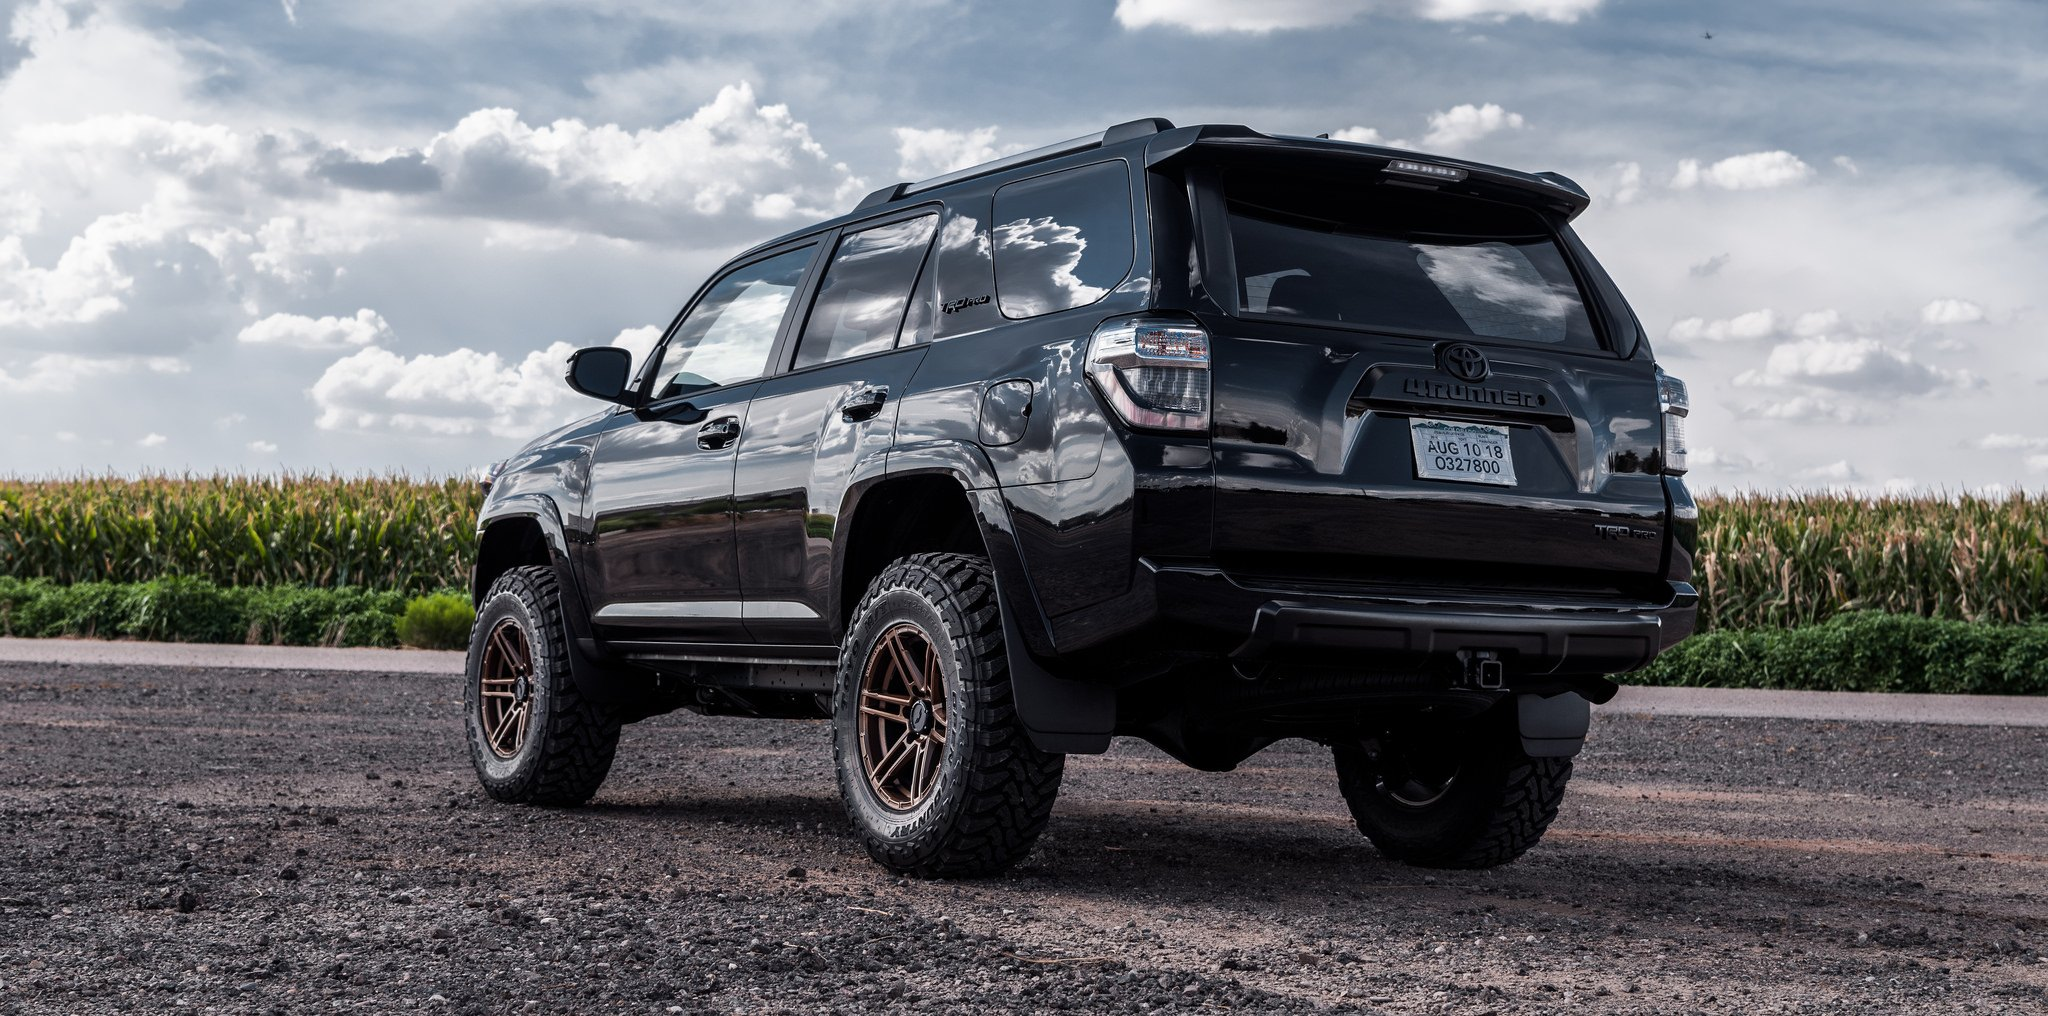 Custom Off Road Wheels Transform Toyota Tacoma With Style Carid Com Gallery